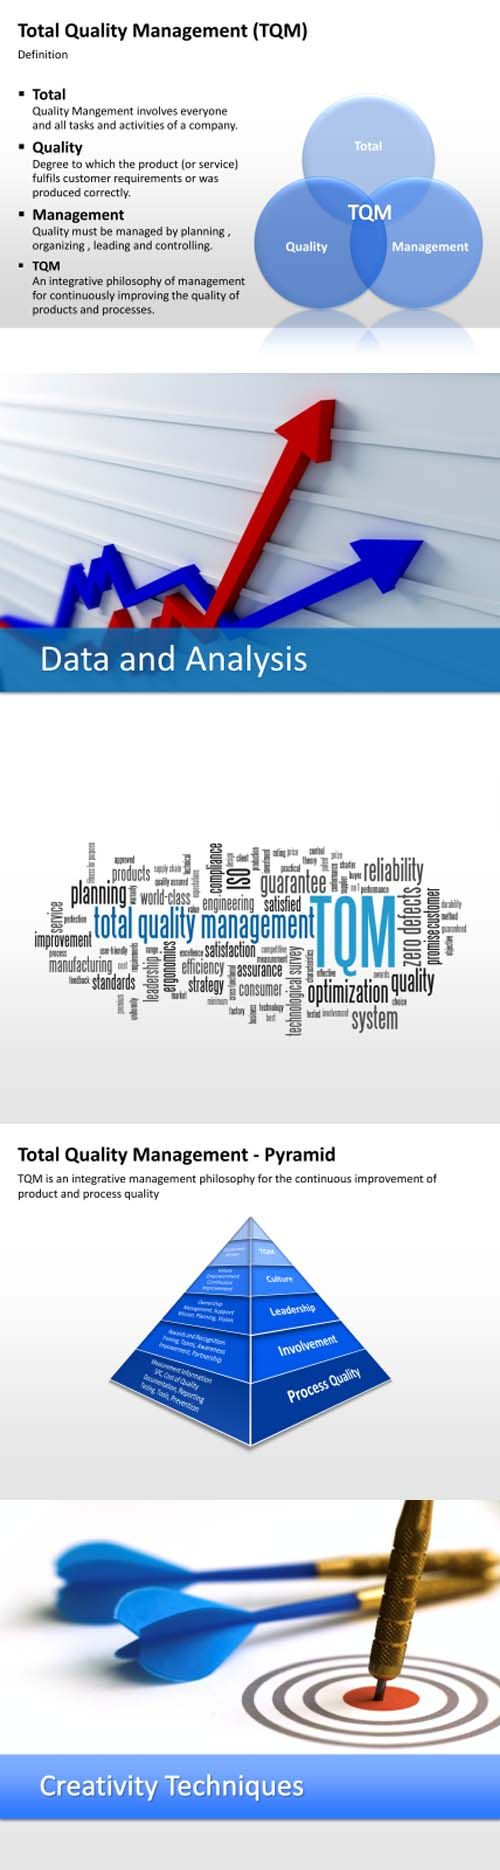 Attractiv PowerPoint templates for quality management in business presentations